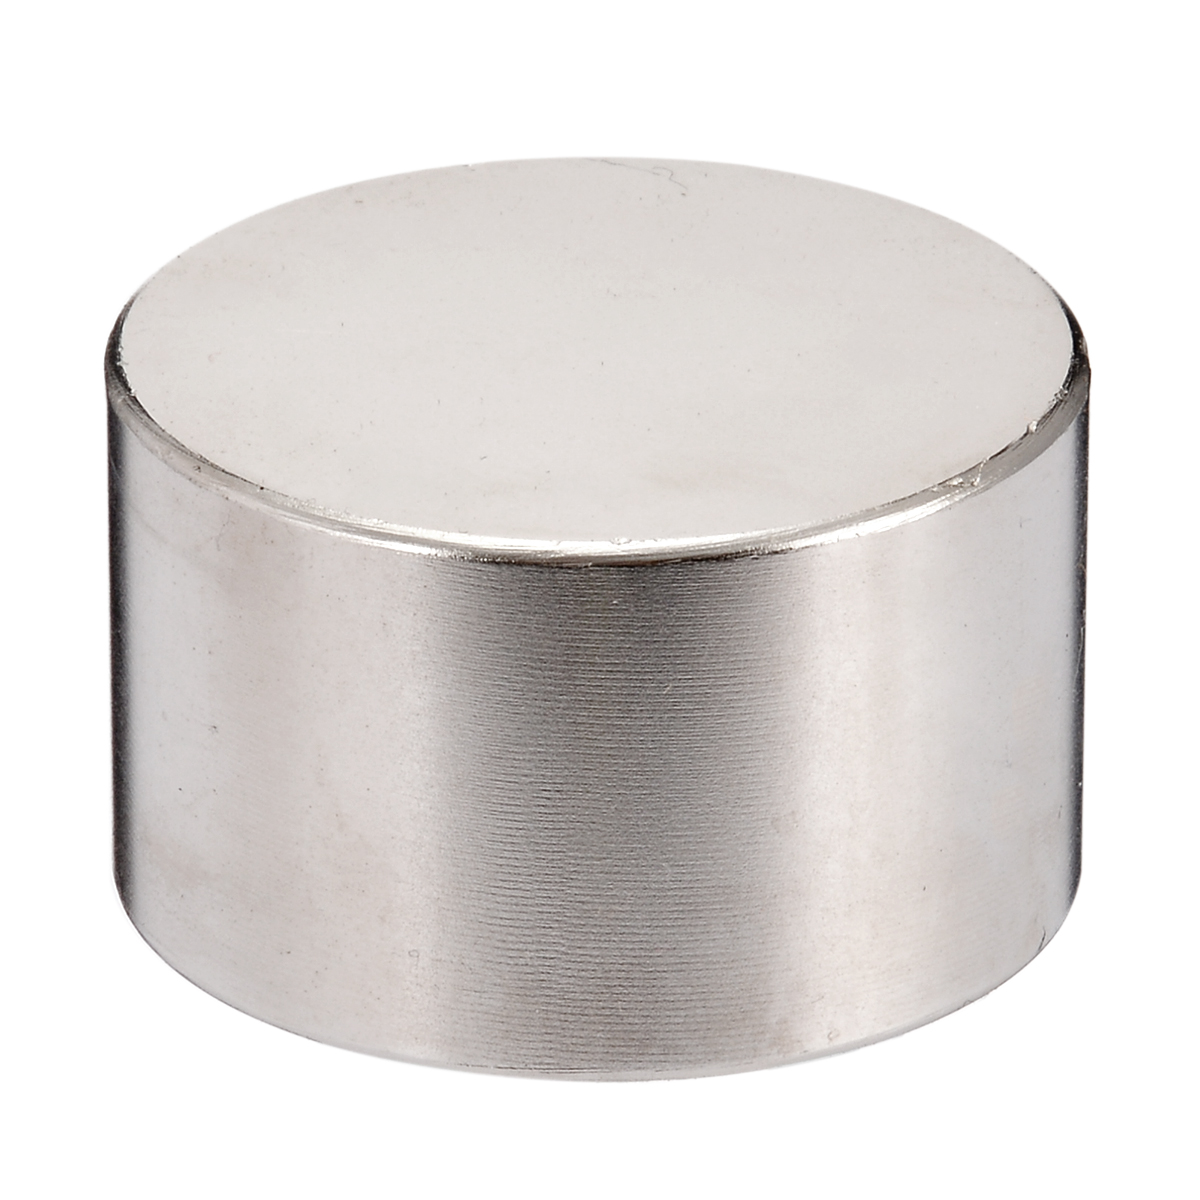 1pc N52 Super Strong Neodymium Magnet Round Rare Earth Magnets 50*30mm Powerful Permanent Magnetic NdFeB Magnets Mayitr